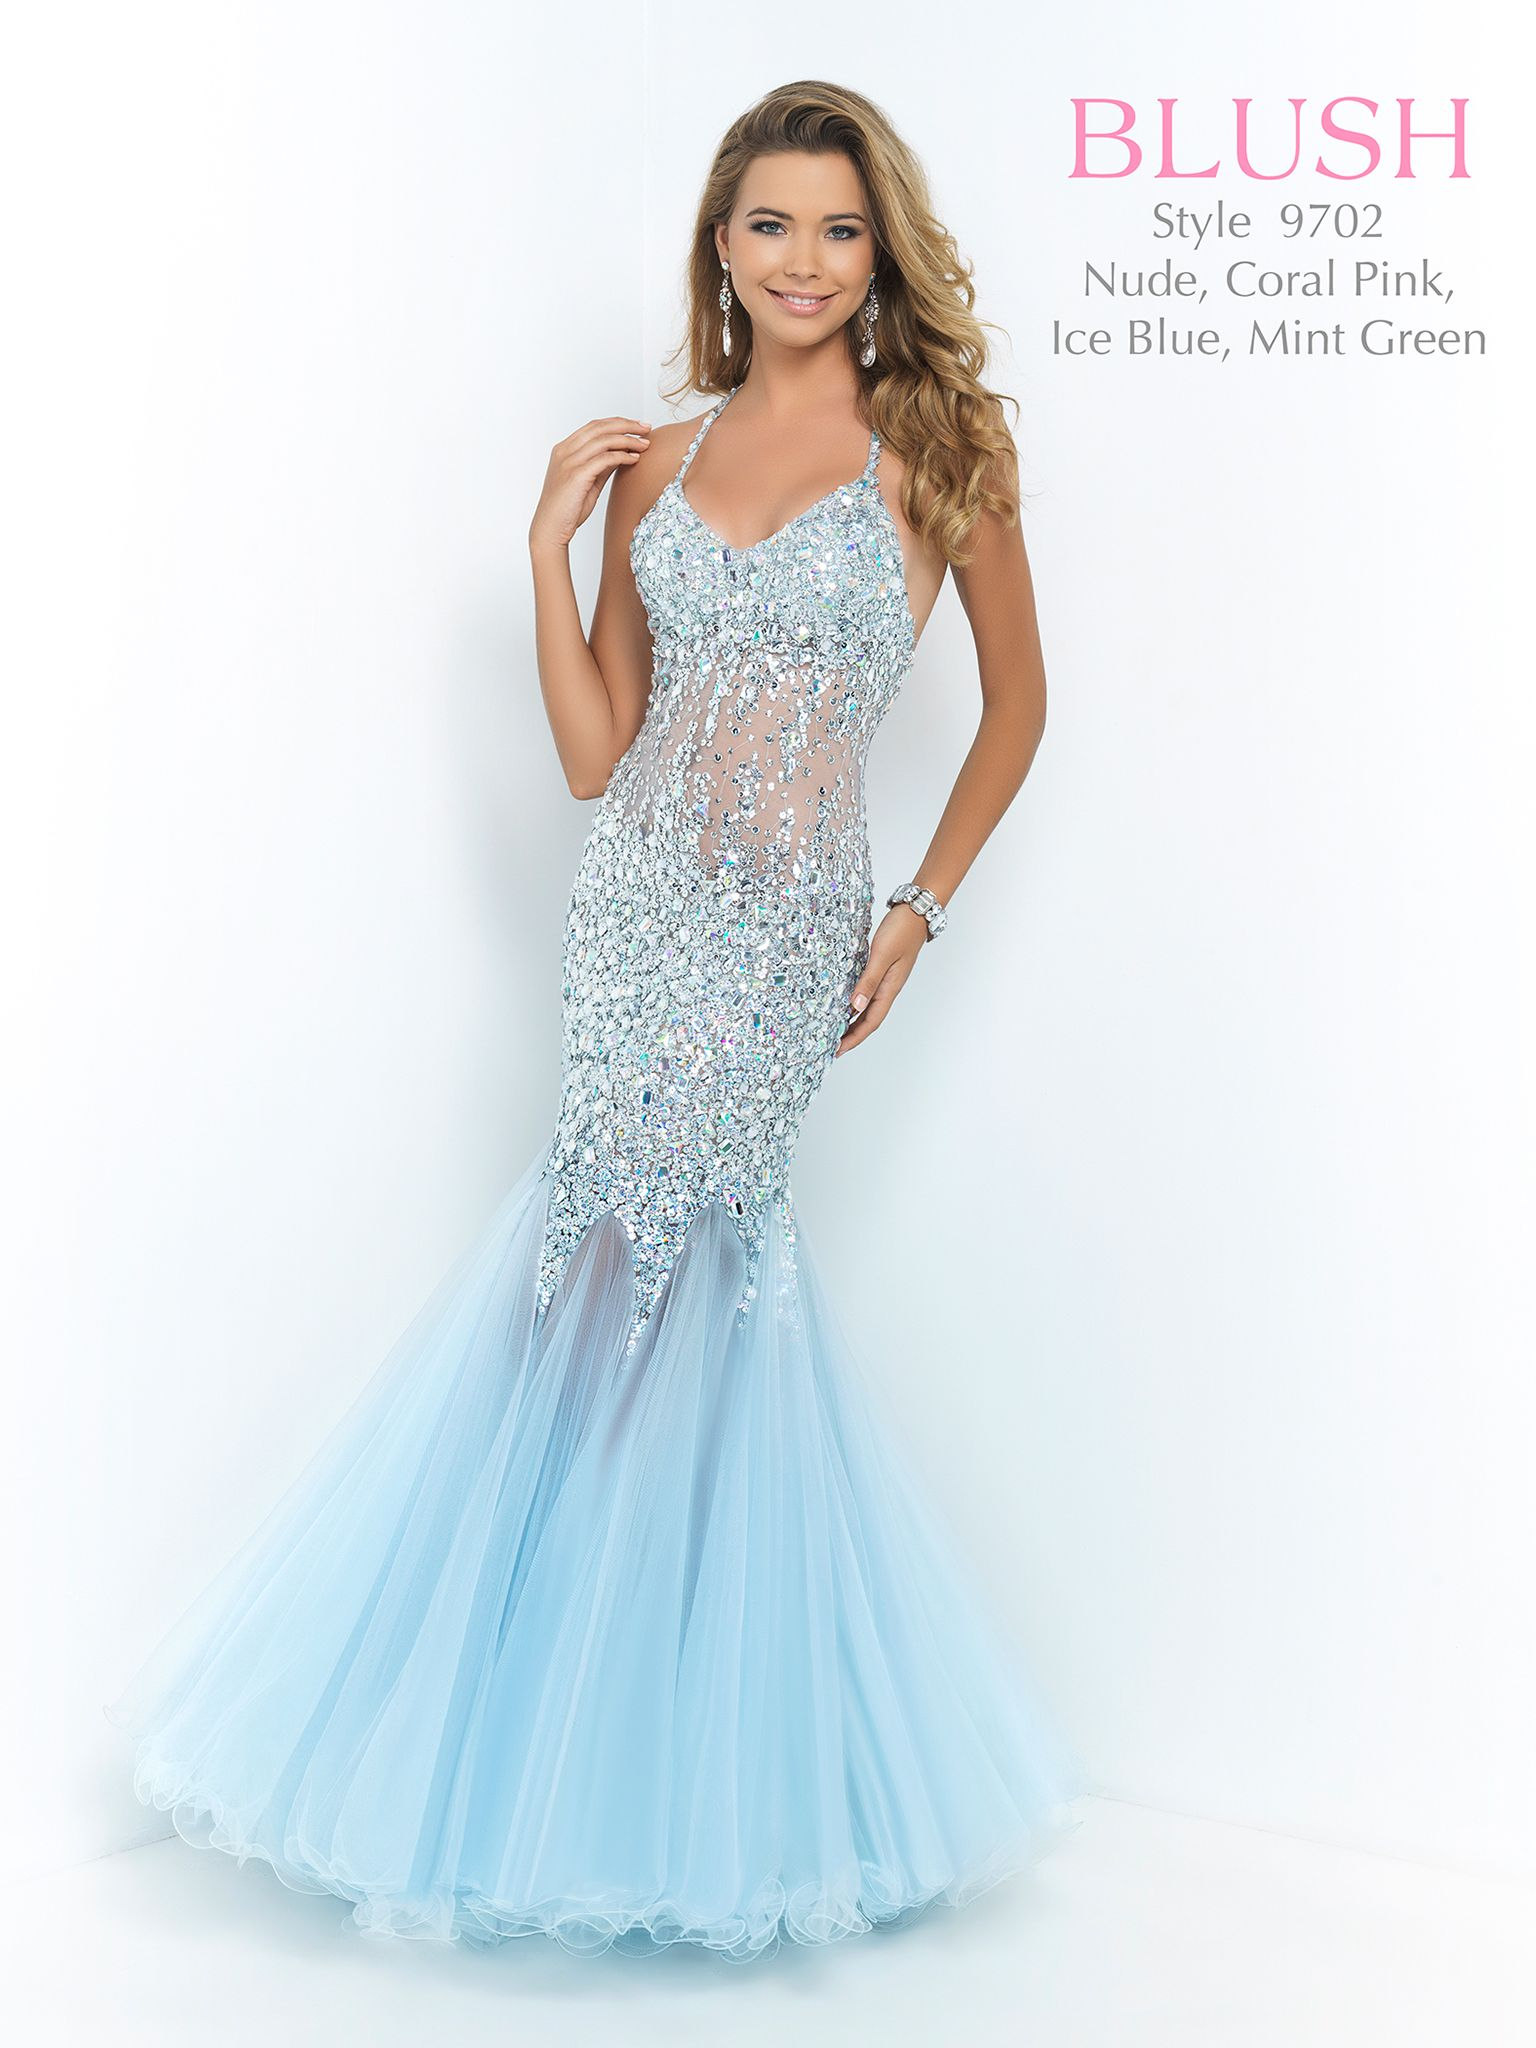 Are you looking for a beautiful flirtatious ice blue dress here